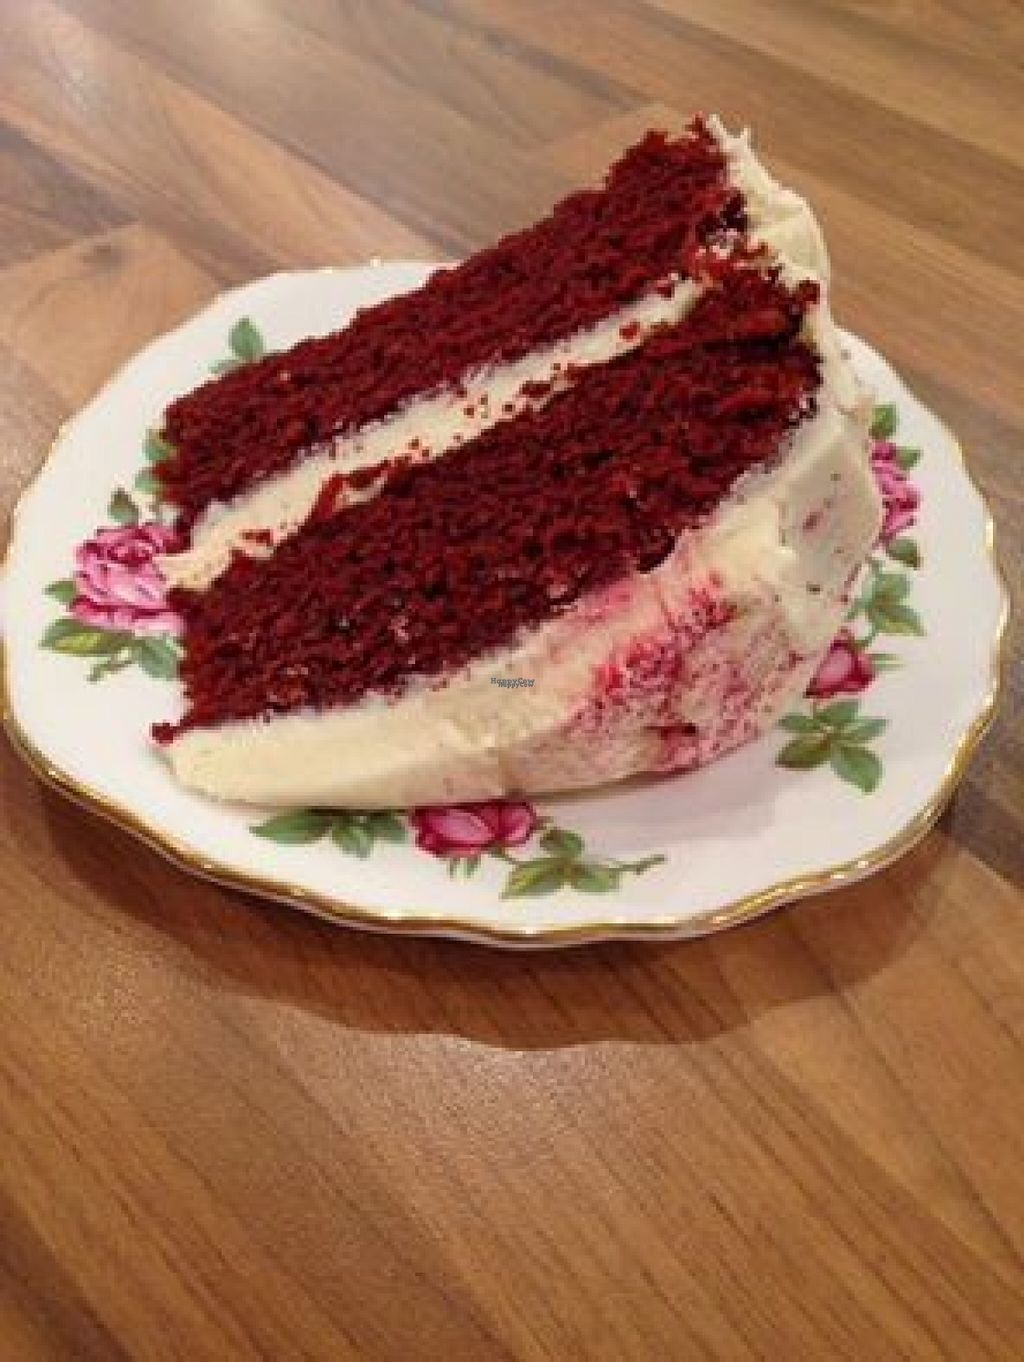 """Photo of Grazing Ground   by <a href=""""/members/profile/Meaks"""">Meaks</a> <br/>Vegan Red Velvet Cake <br/> August 1, 2016  - <a href='/contact/abuse/image/76573/164371'>Report</a>"""